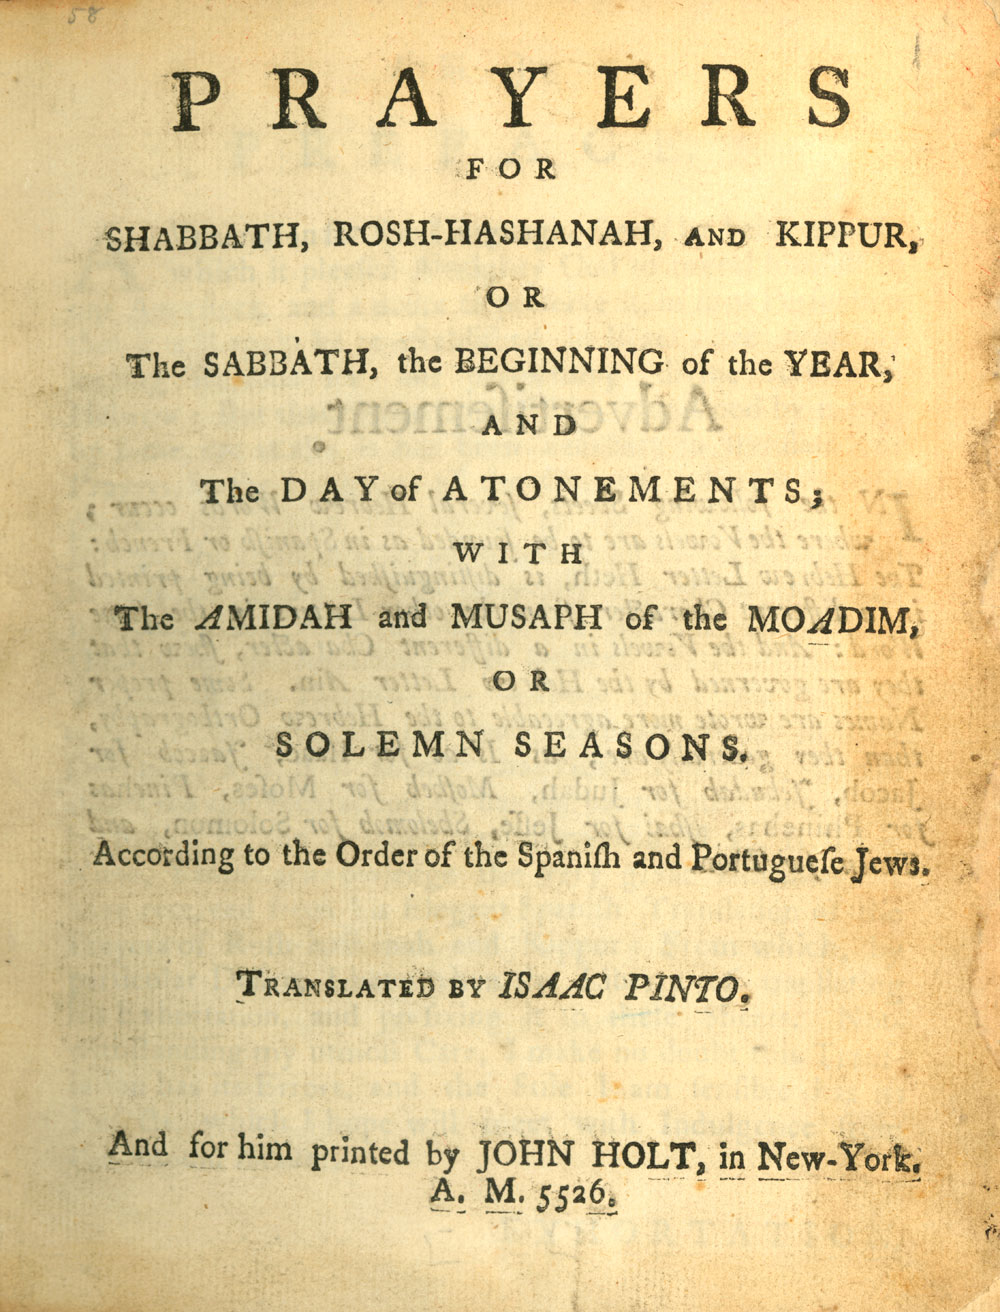 Isaac Pinto, Prayers for Shabbath ... According to the Order of the Spanish and Portuguese Jews. New York: John Holt, 1766. New-York Historical Society.